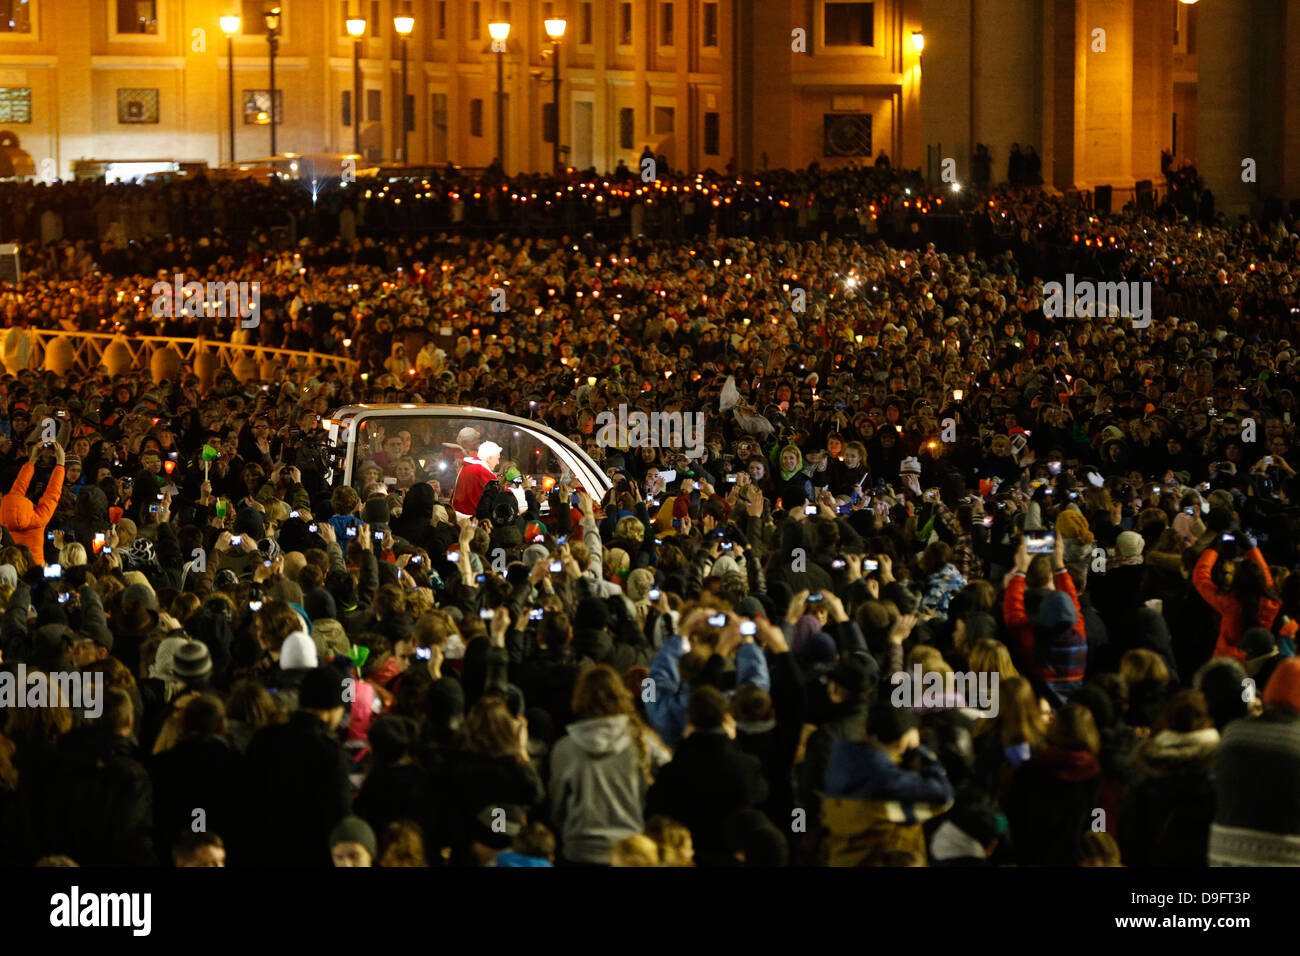 Thousands of people in St. Peter's Square pray with Pope Benedict XVI in Rome led by the Taize Community, Rome, - Stock Image